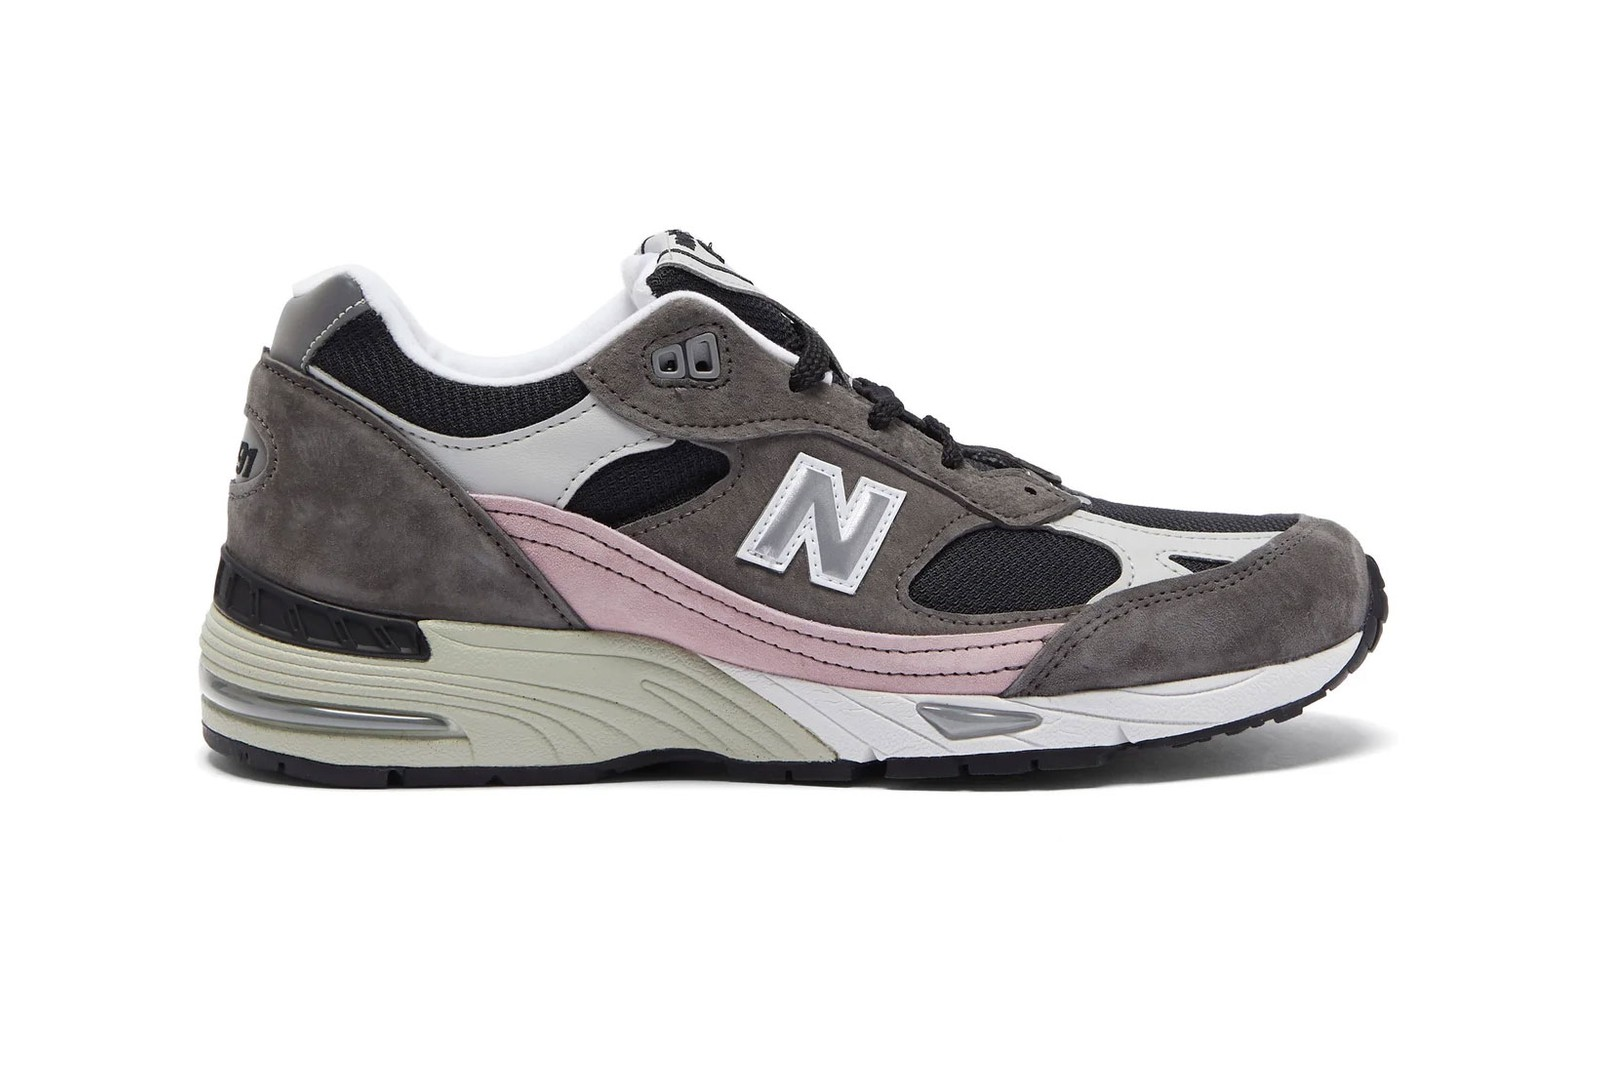 best womens winter sneakers 2021 new year nike air force 1 af1 new balance made in england 991 balenciaga triple s pink clear sole